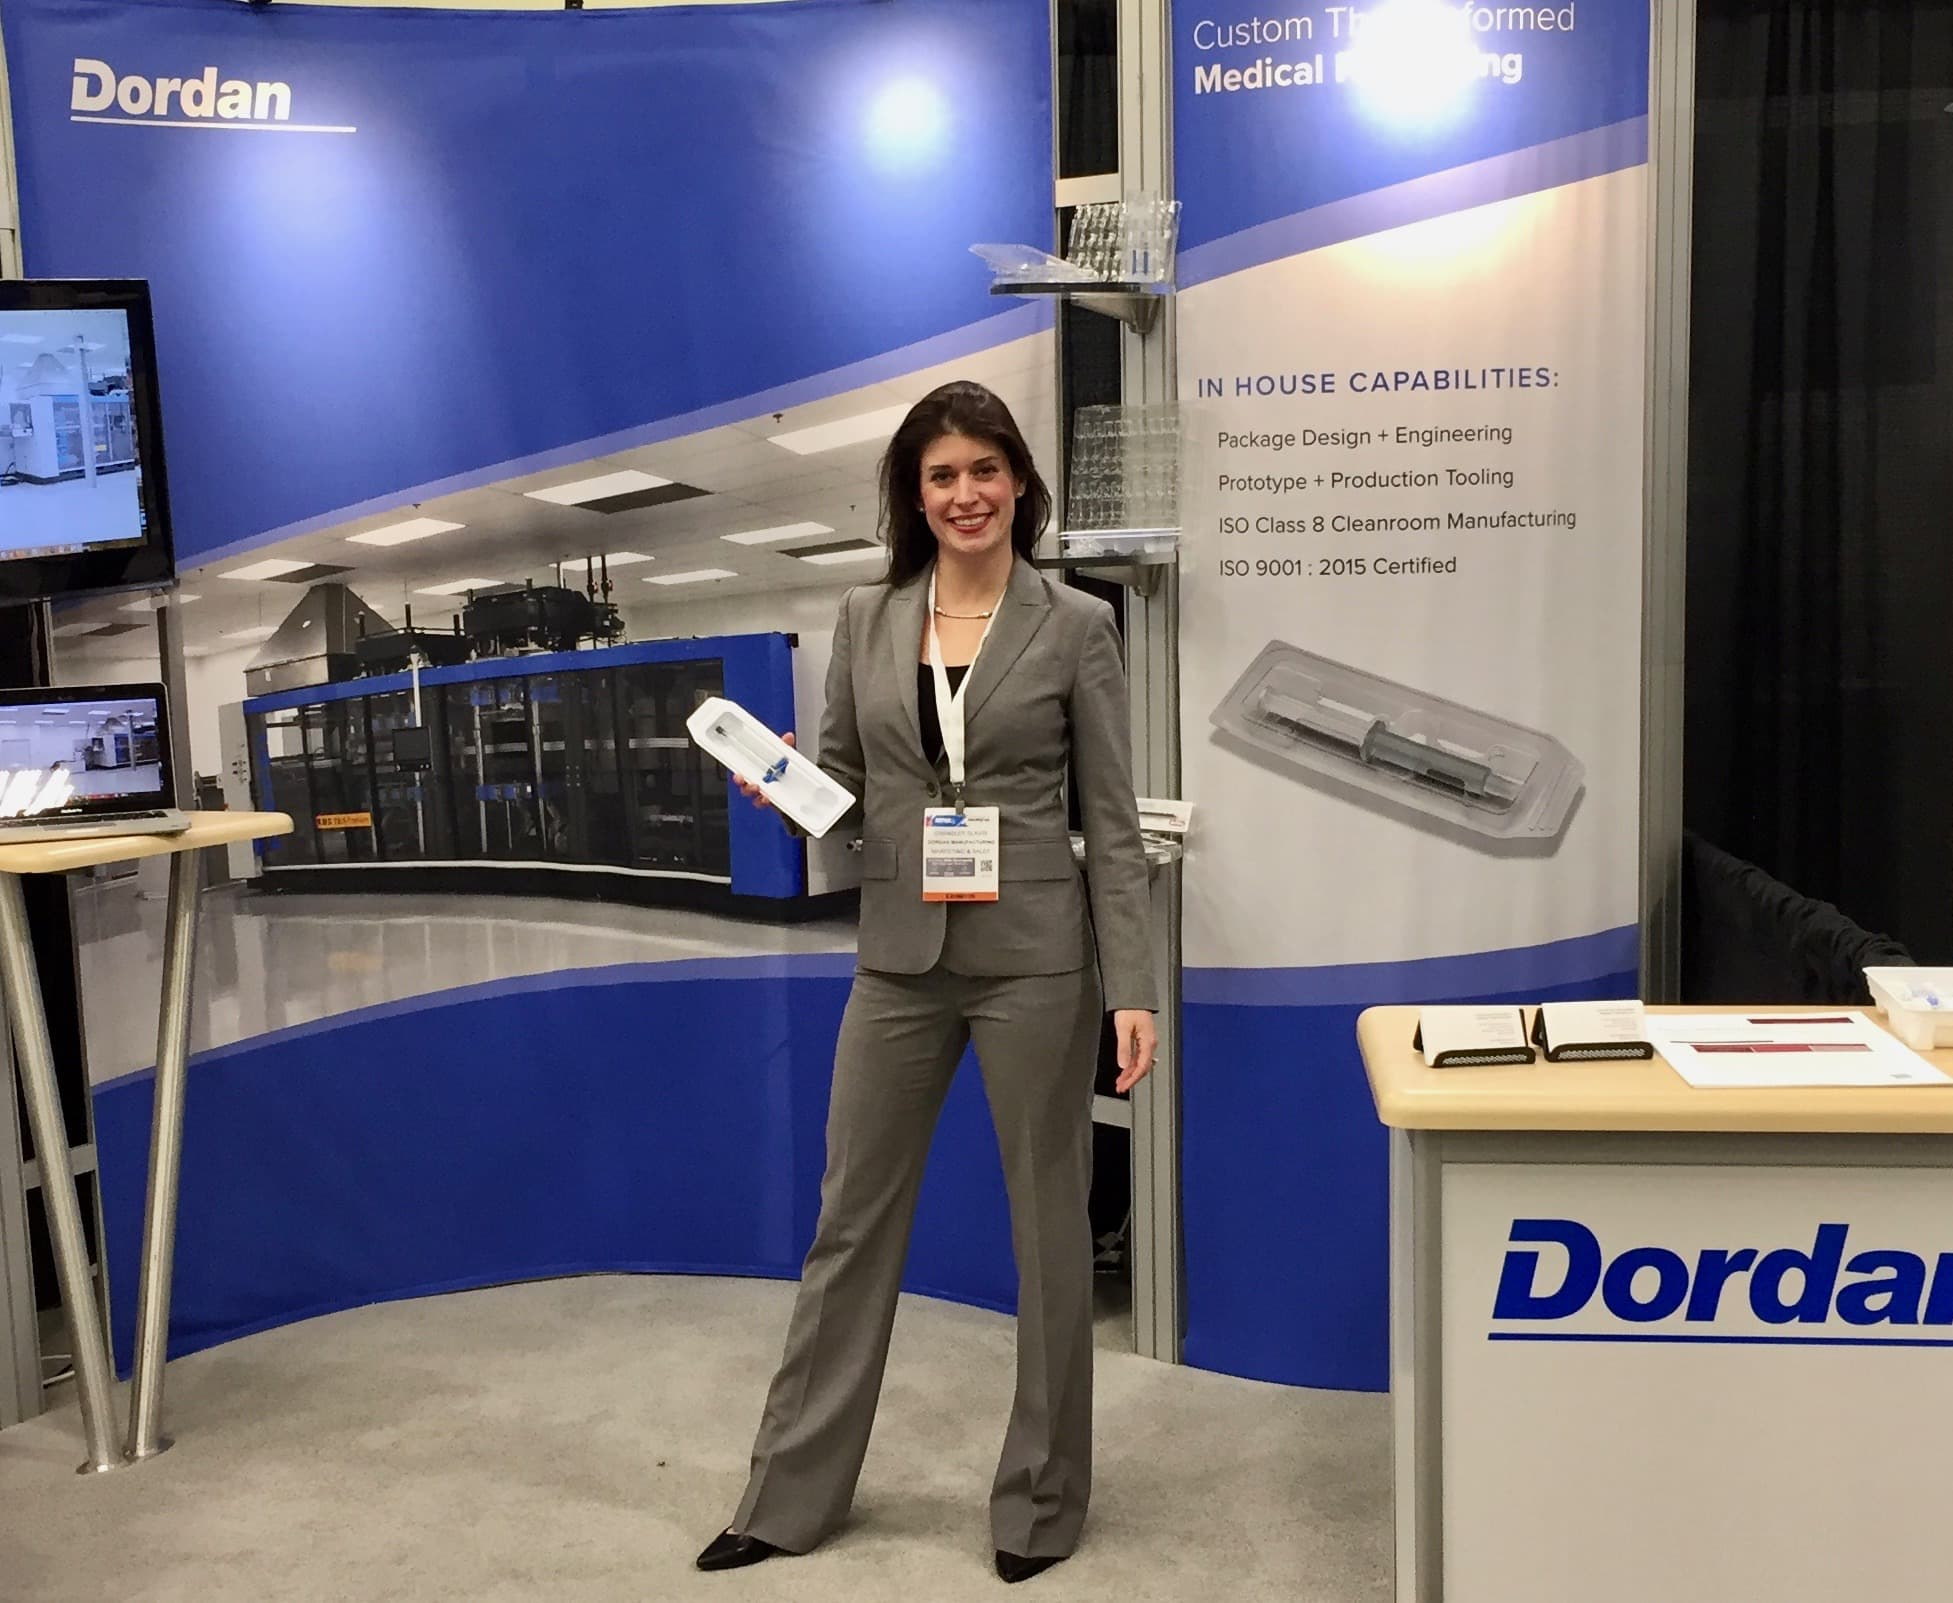 Dordan's booth at MD&M